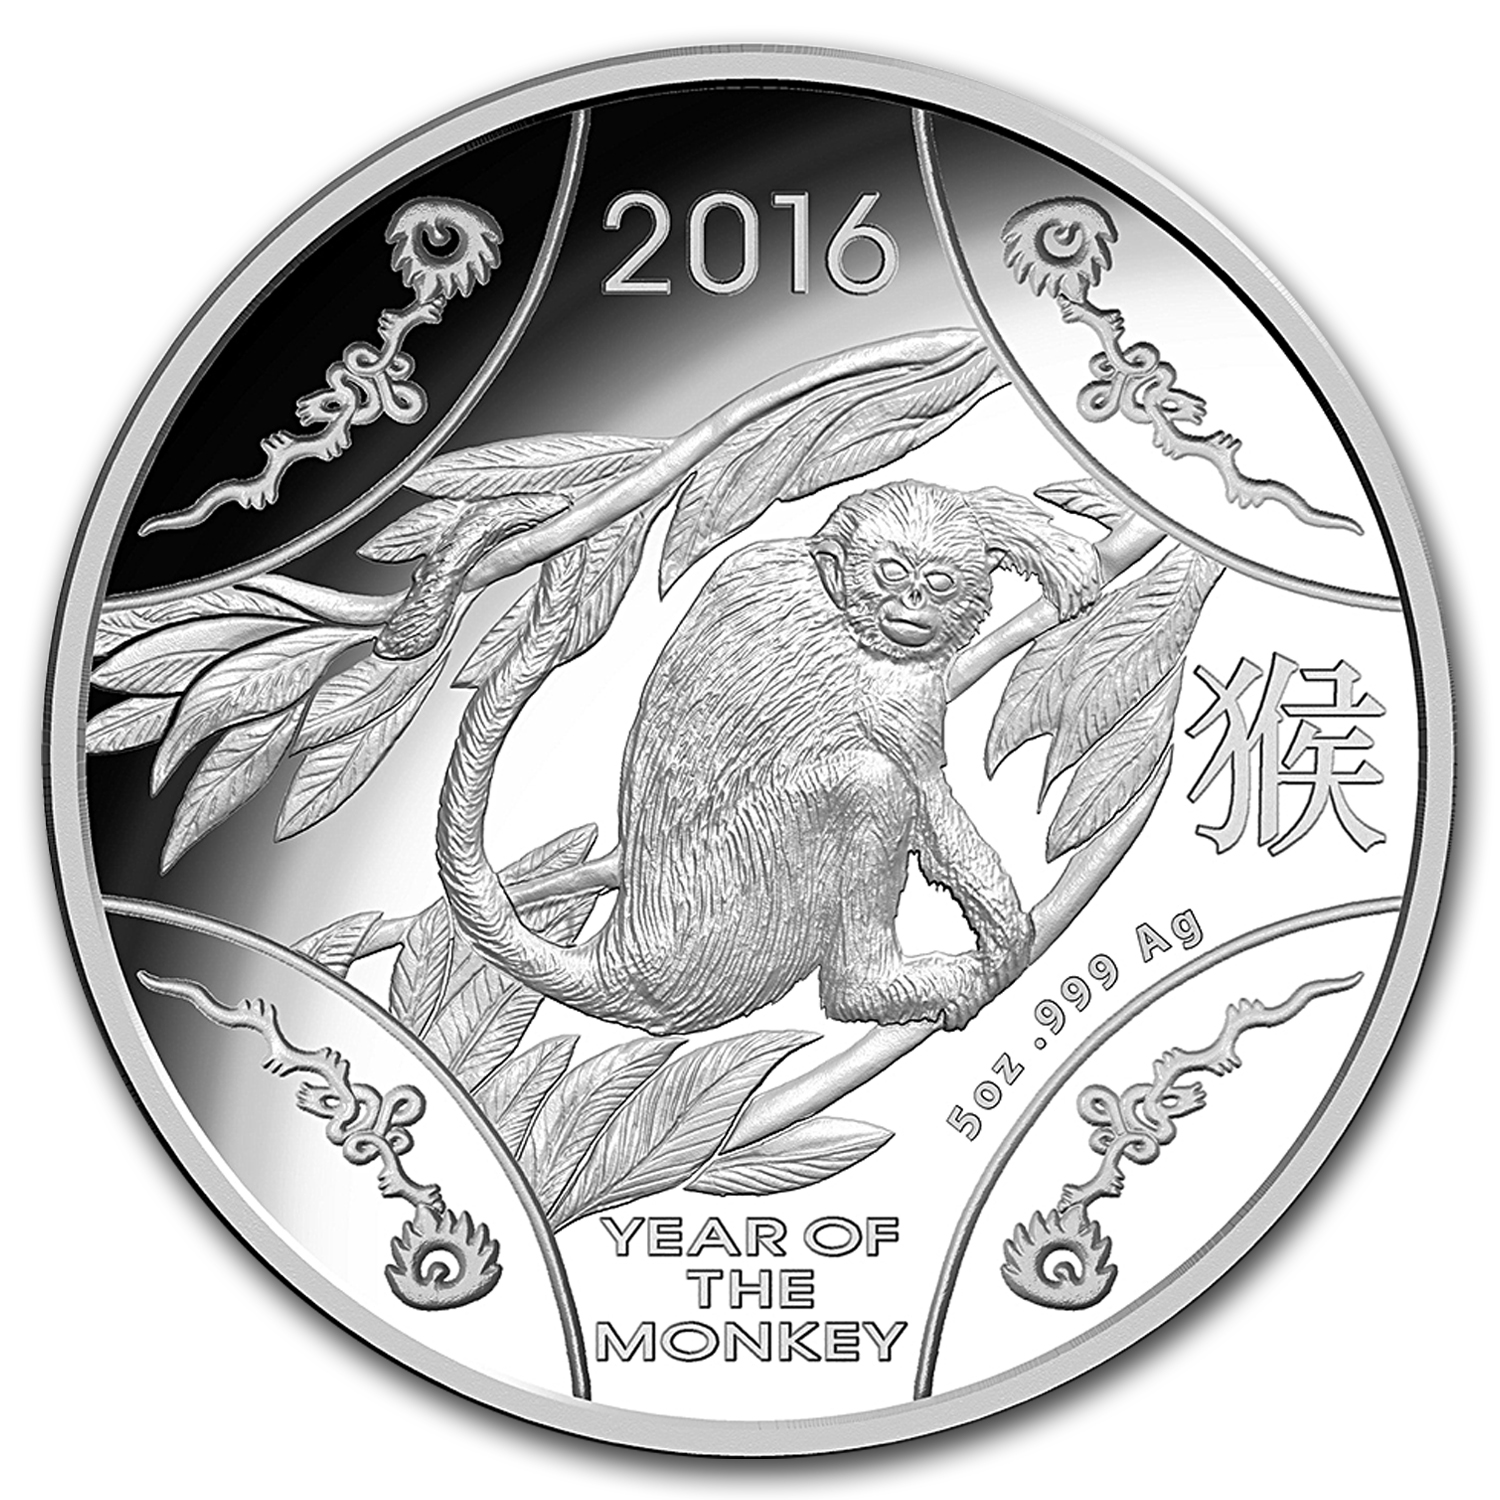 2016 Australia 5 oz Silver Year of the Monkey Proof